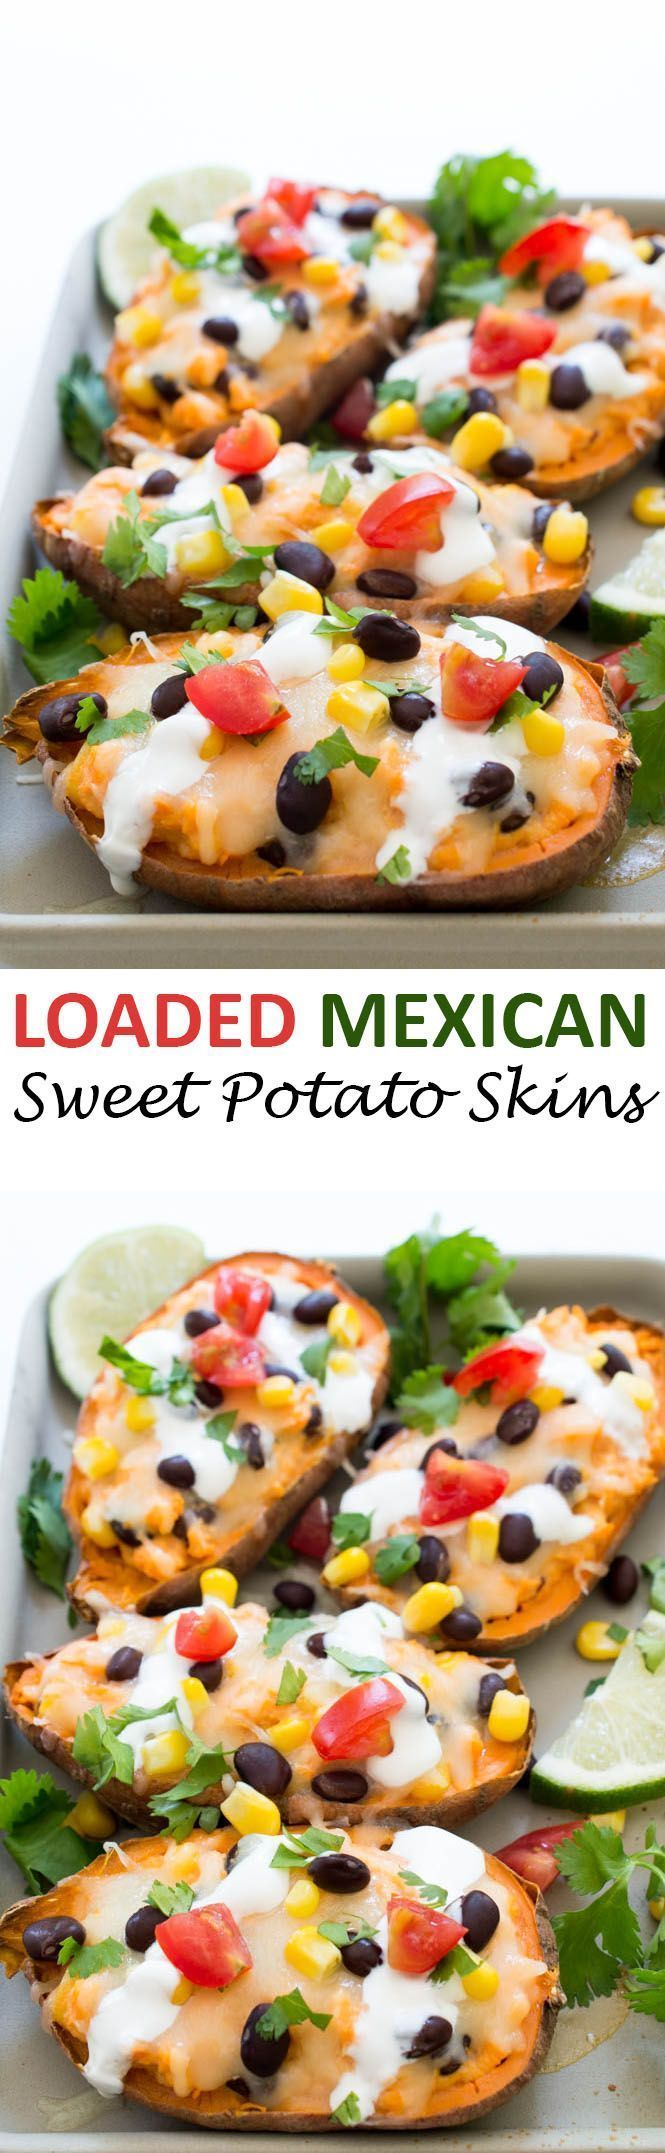 Loaded Mexican Sweet Potato Skins topped with Monterey jack cheese, black beans, corn and tomatoes. The perfect side dish to complement any meal!   chefsavvy.com #recipe #mexican #sweet #potato #skins